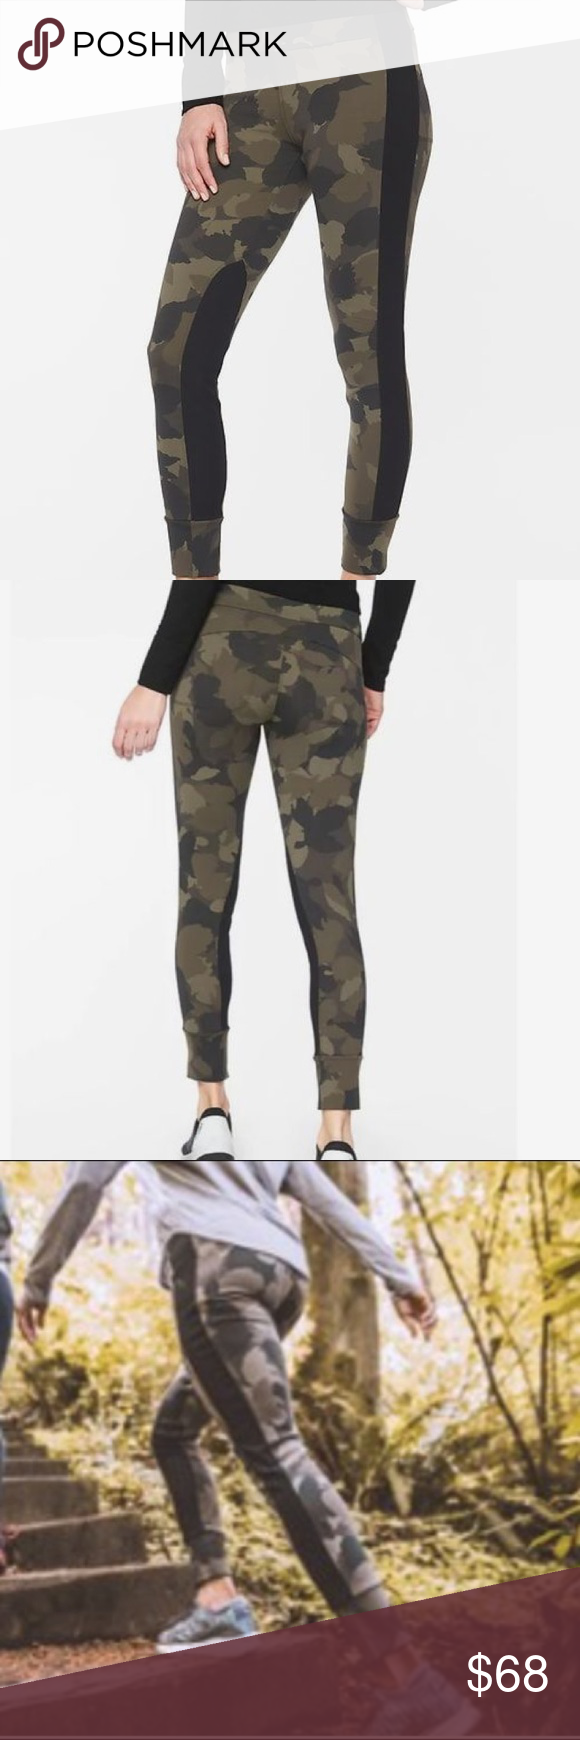 c6f8f5deaf92ff Athleta Essex Camo Hybrid Tight! NWOT! Athletes Essex Camo Hybrid Tight SOLD